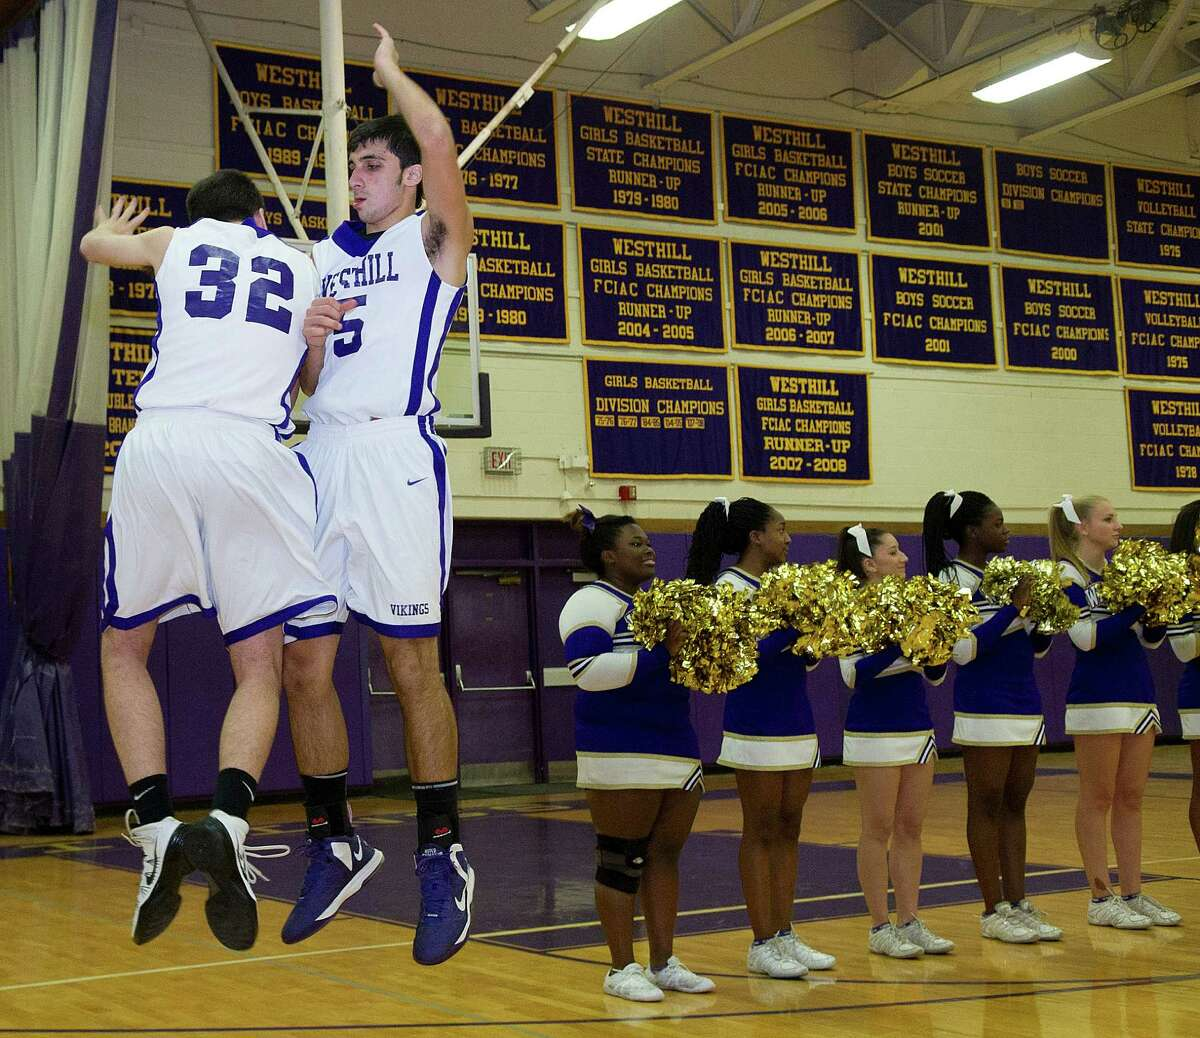 Friday's basketball game between Westhill and Ridgefield in Stamford, Conn., on December 20, 2013.